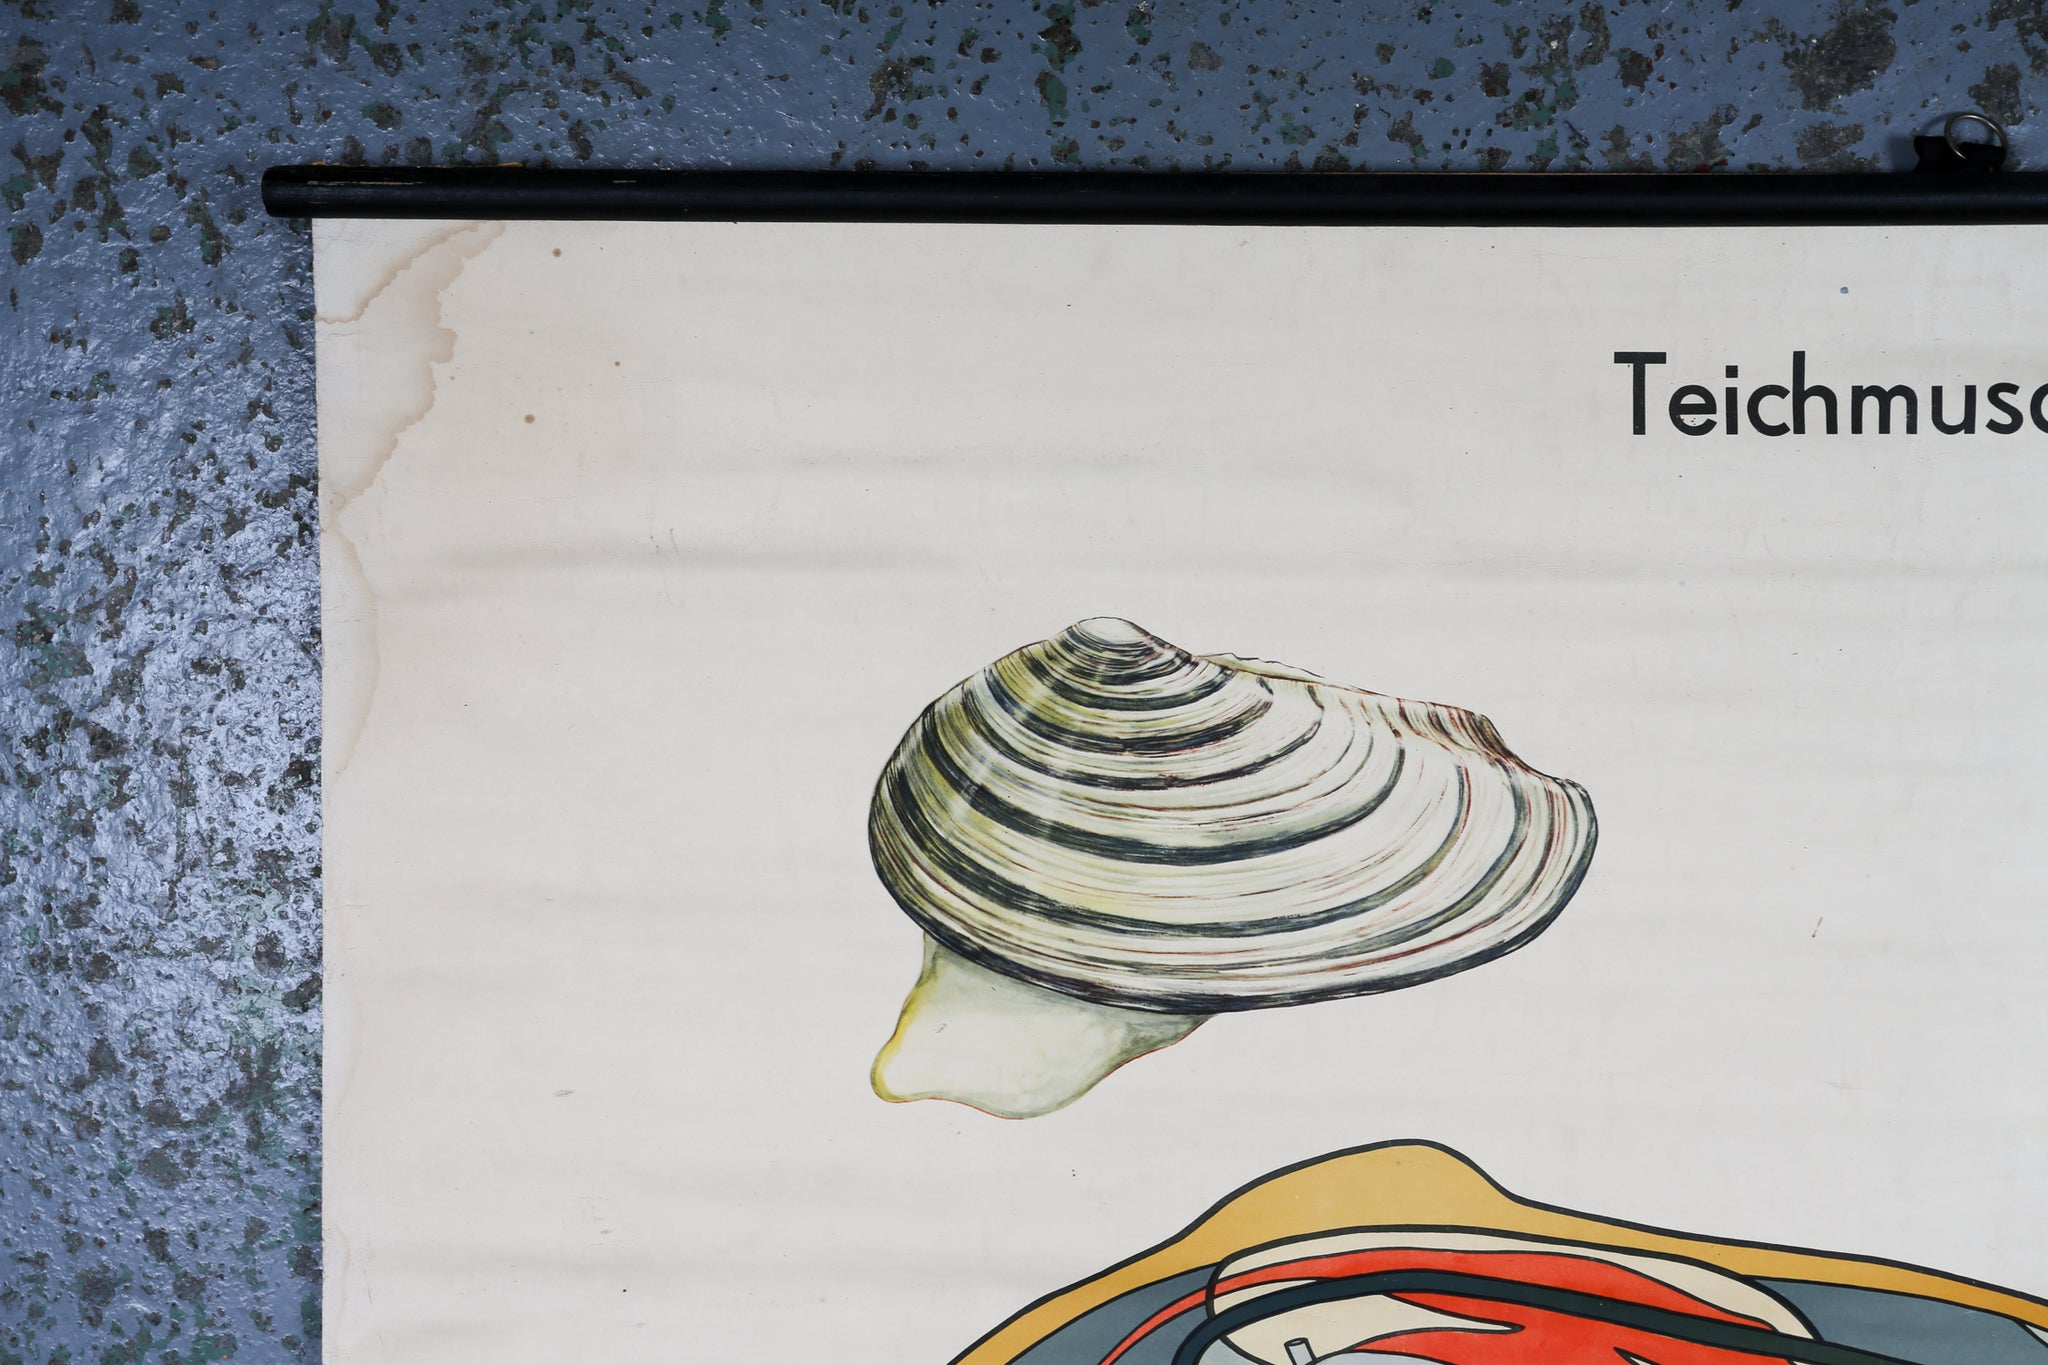 German Educational Wall Chart of a Mussel